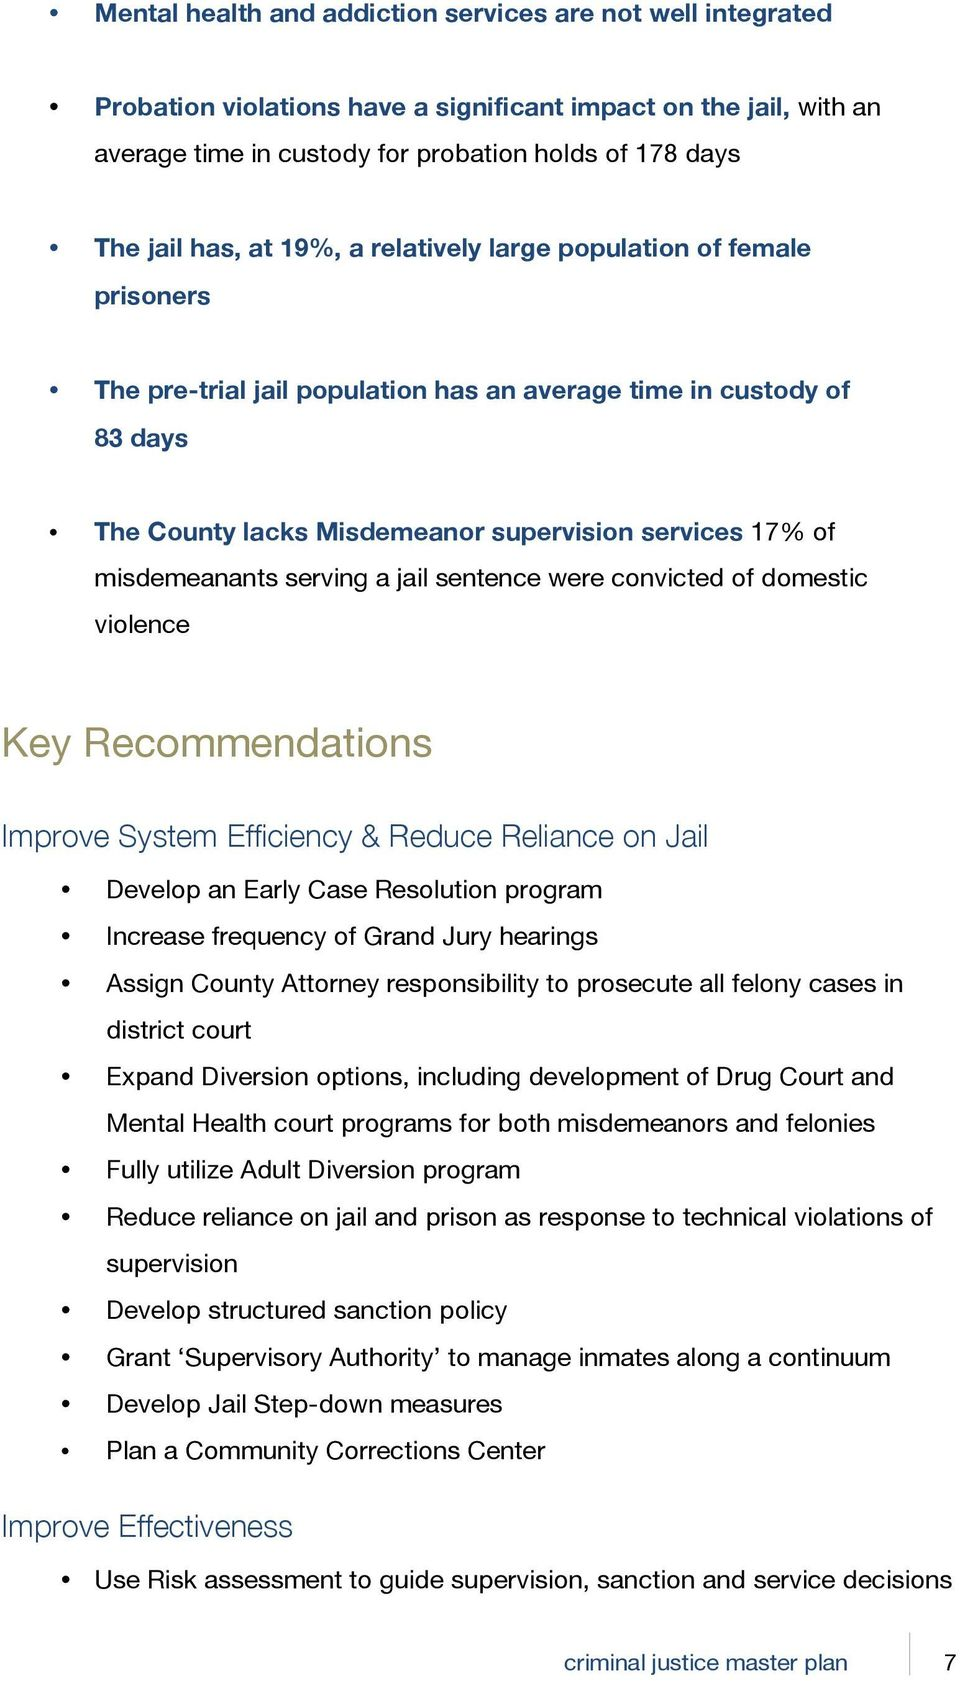 misdemeanants serving a jail sentence were convicted of domestic violence Key Recommendations Improve System Efficiency & Reduce Reliance on Jail Develop an Early Case Resolution program Increase